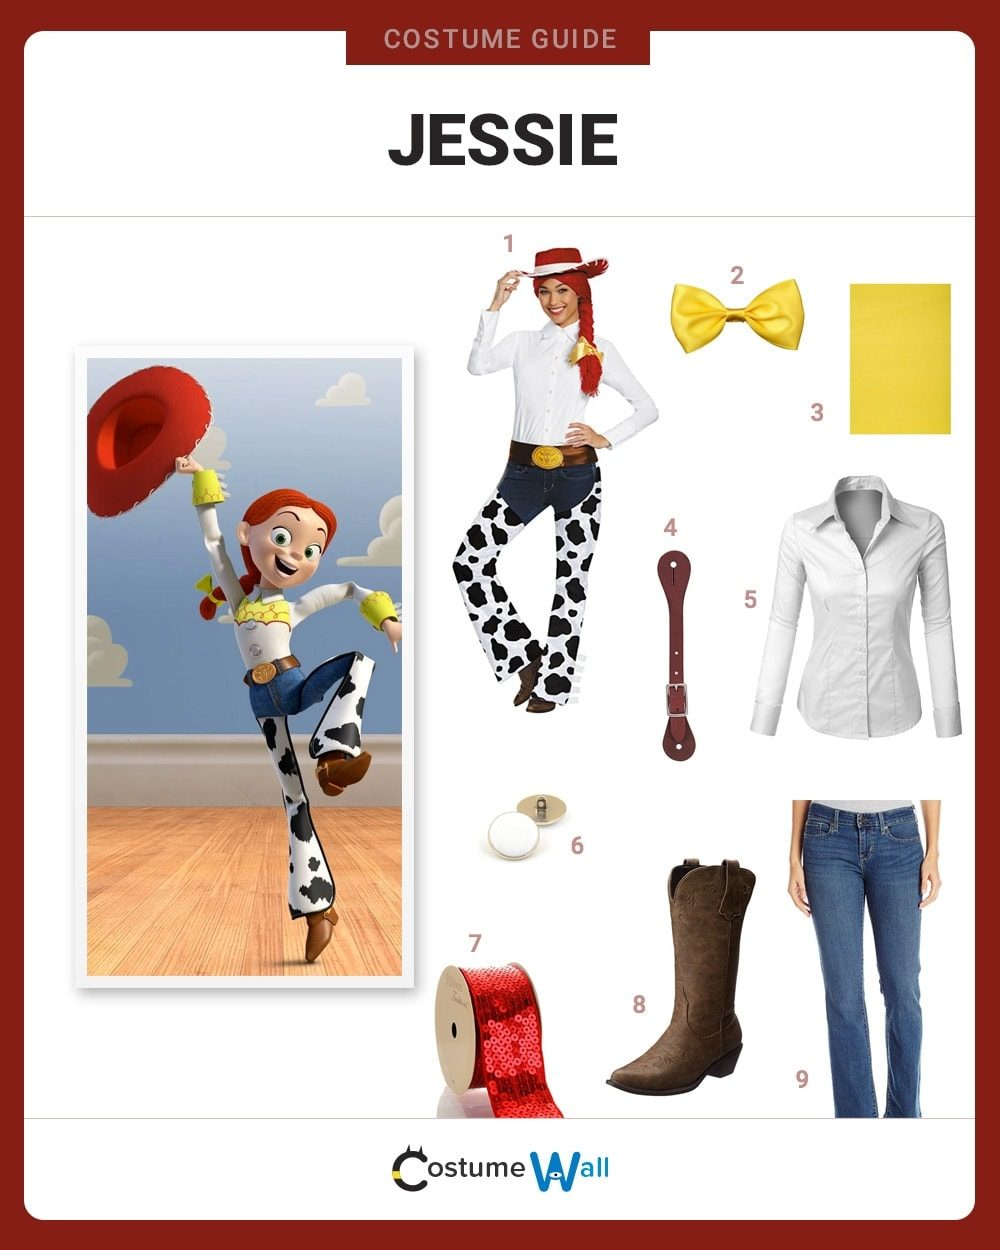 Jessie Costume Guide